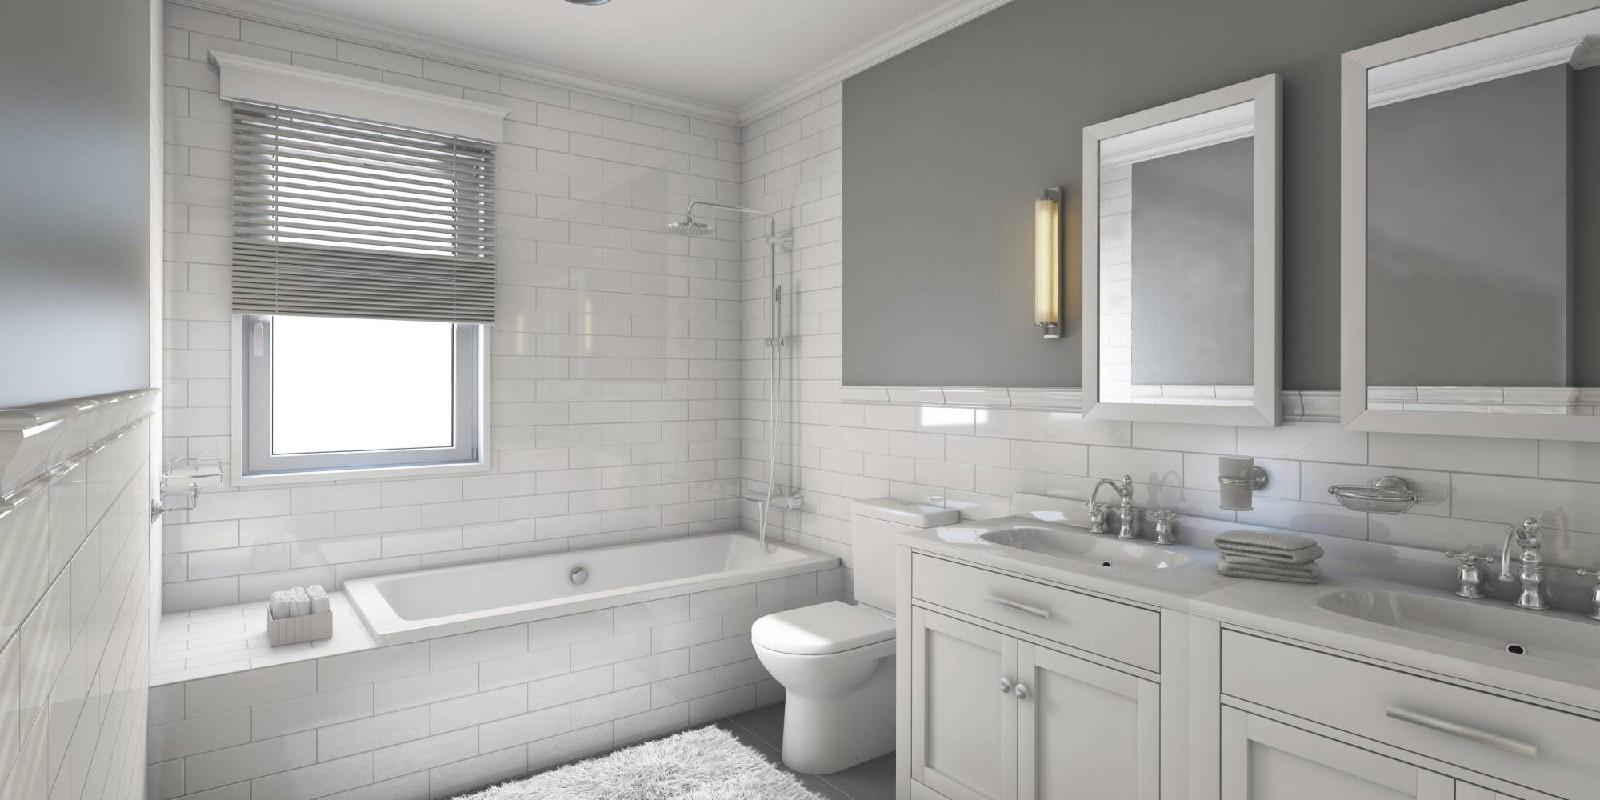 Bathrooms, fixtures & showers